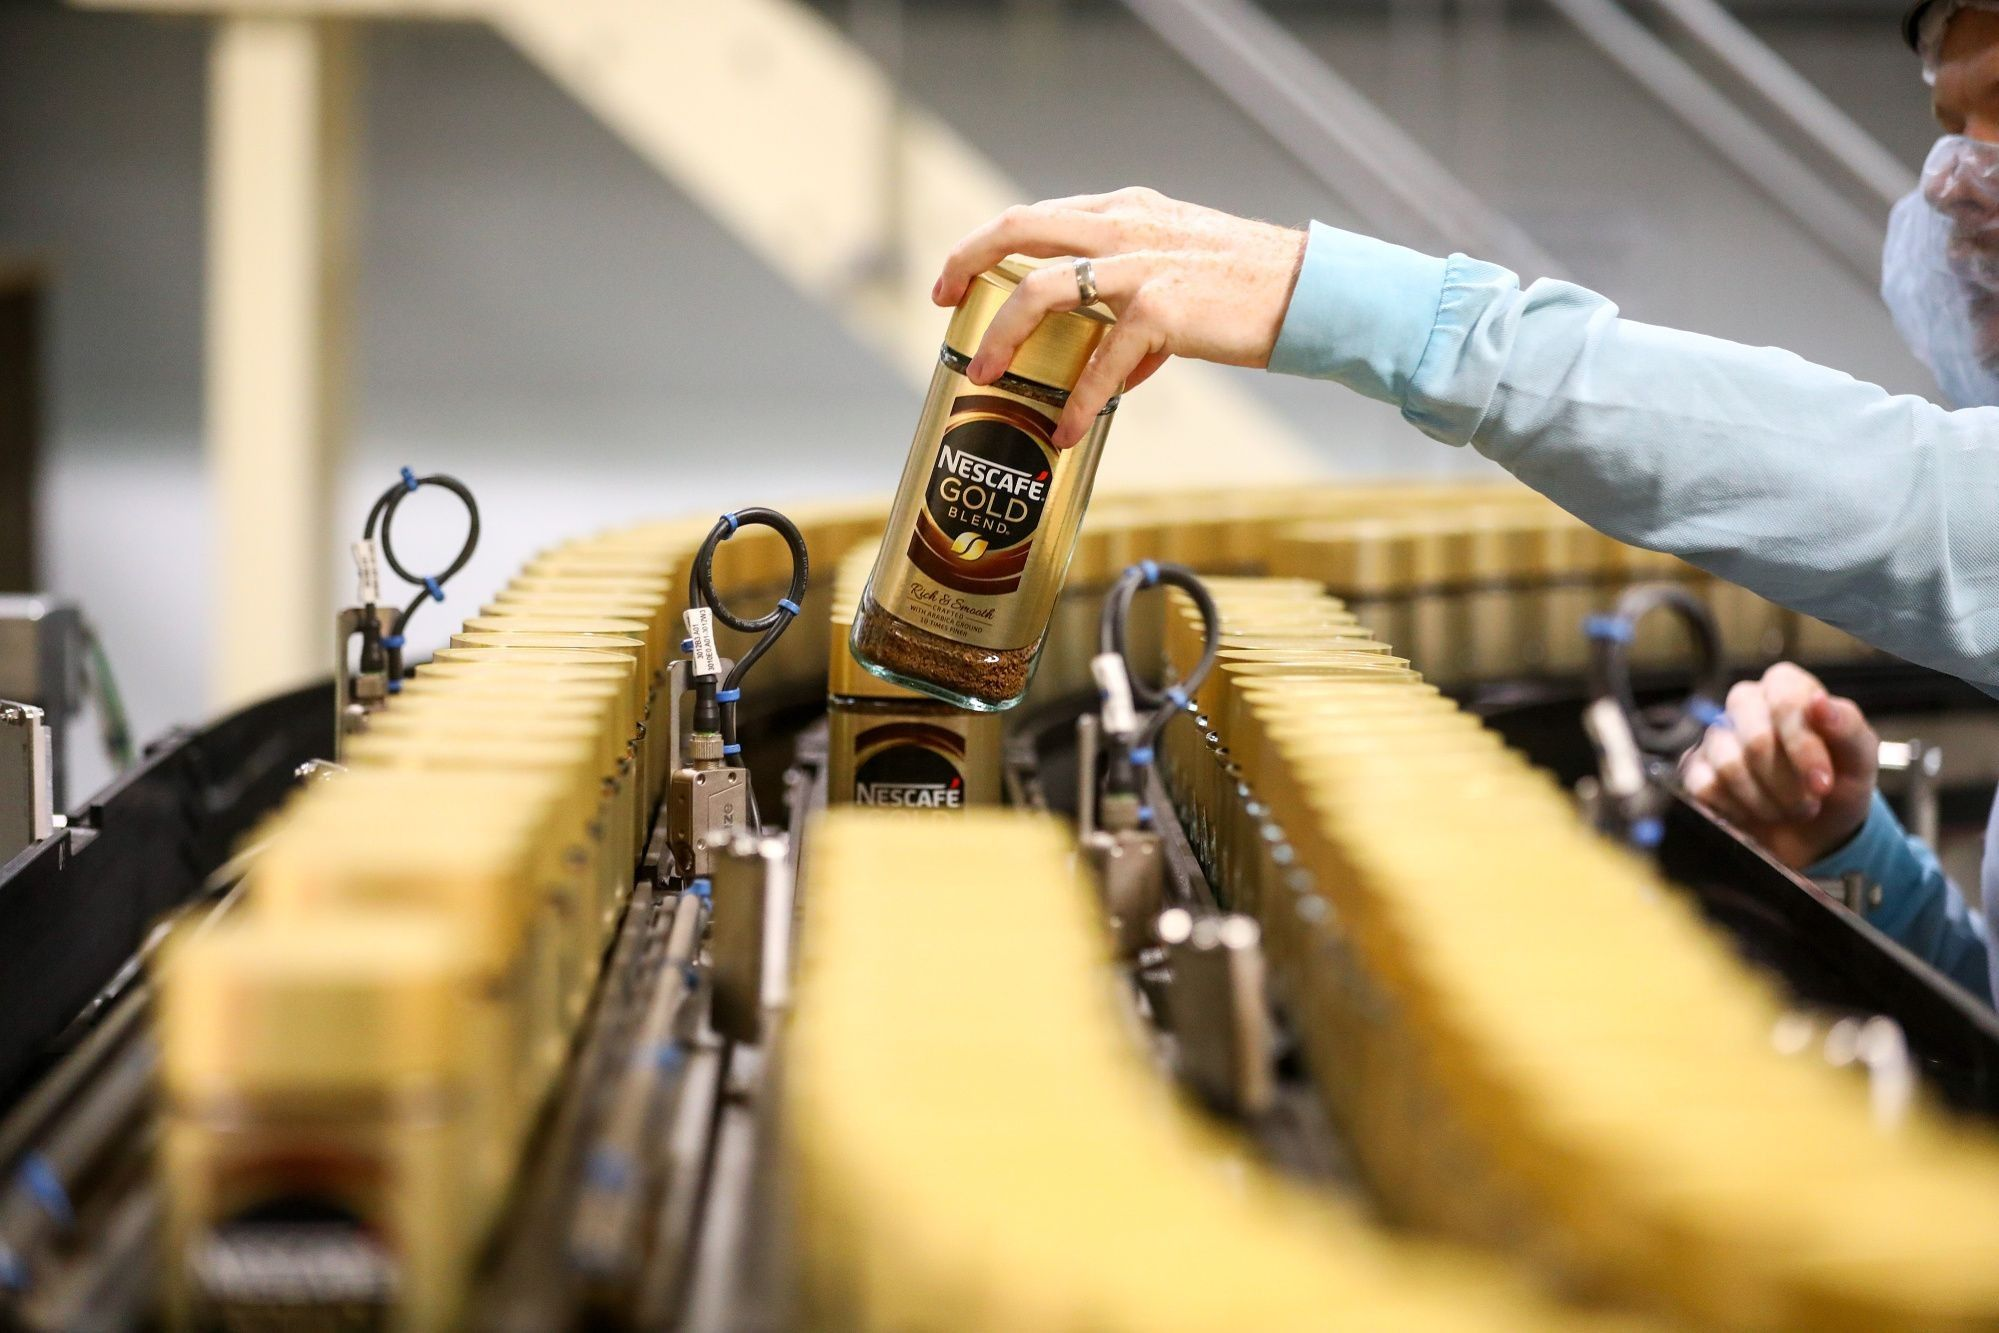 Nescafe Production As Coffee Stimulates Growth For Nestle SA